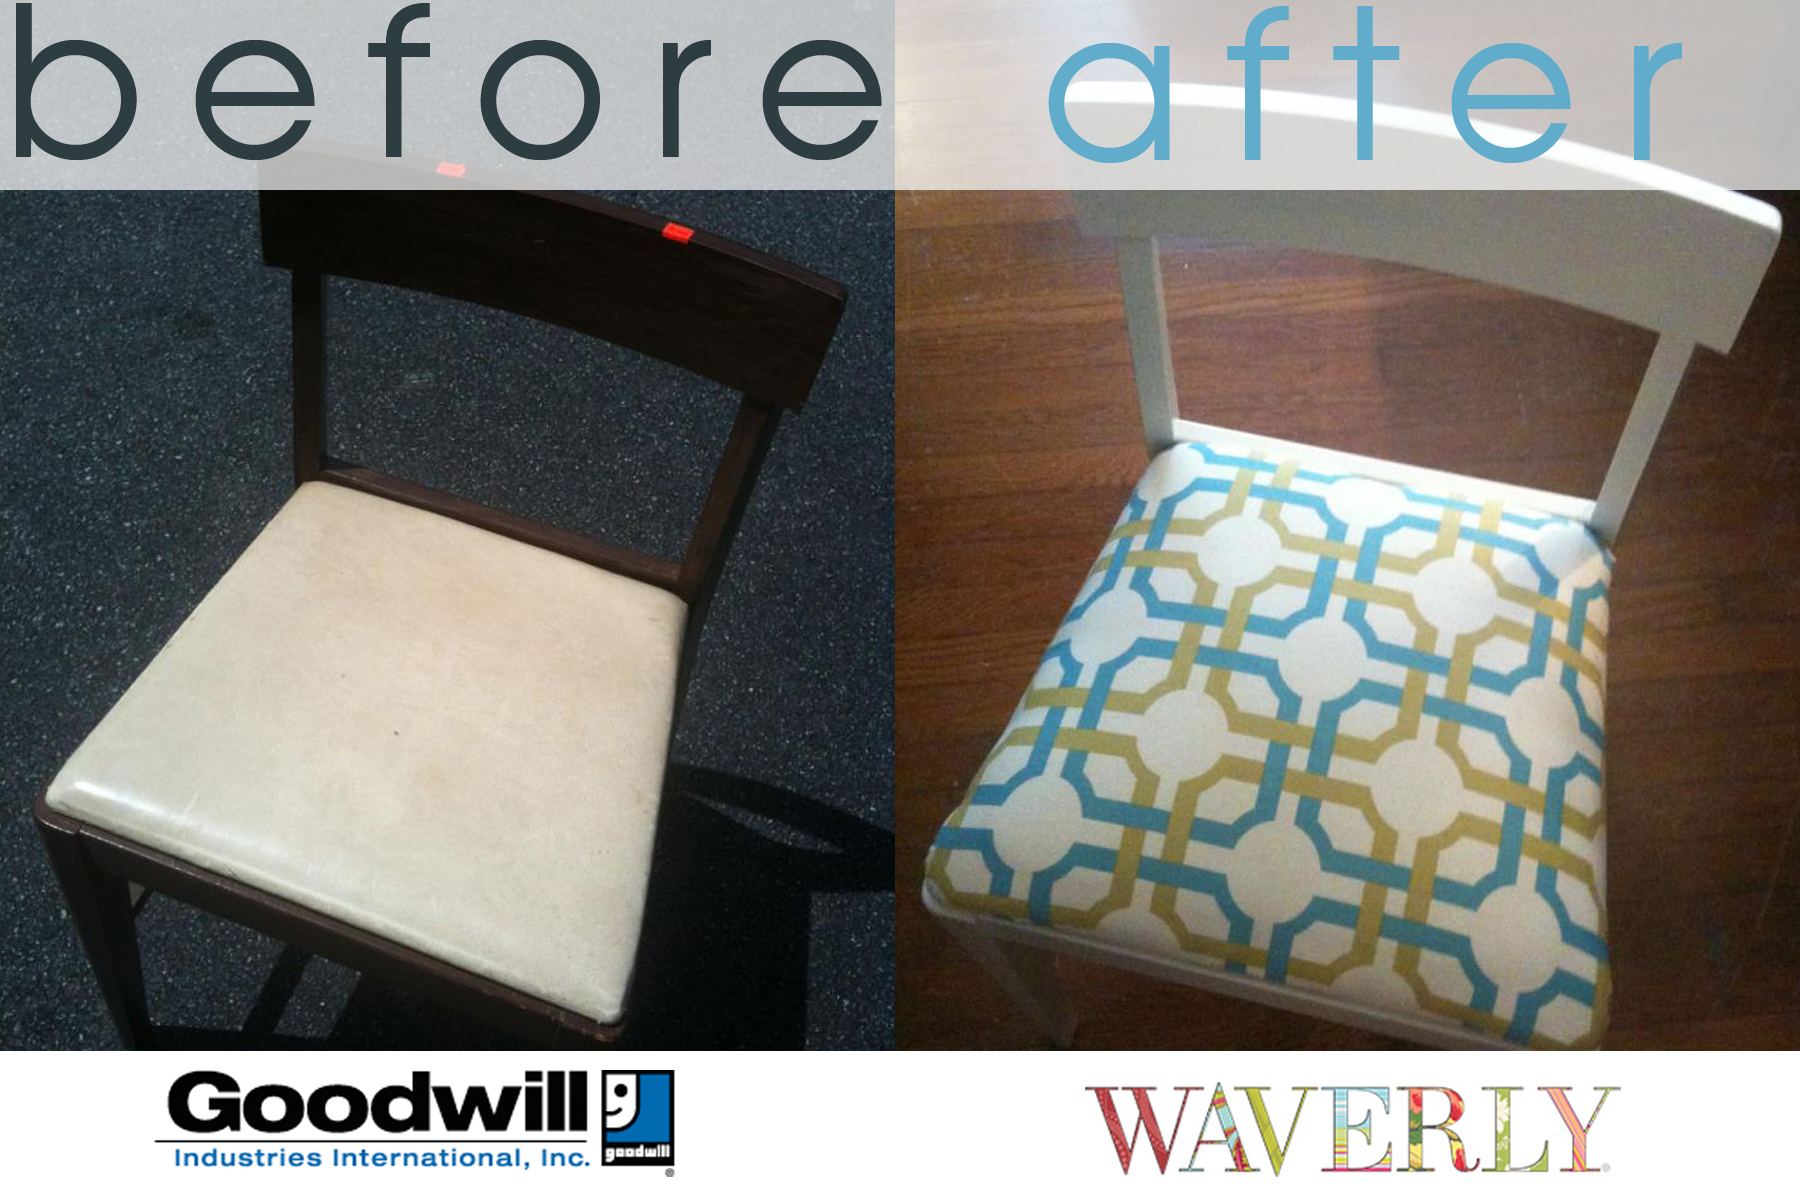 diy drab to fab goodwill makeover waverly style danielle